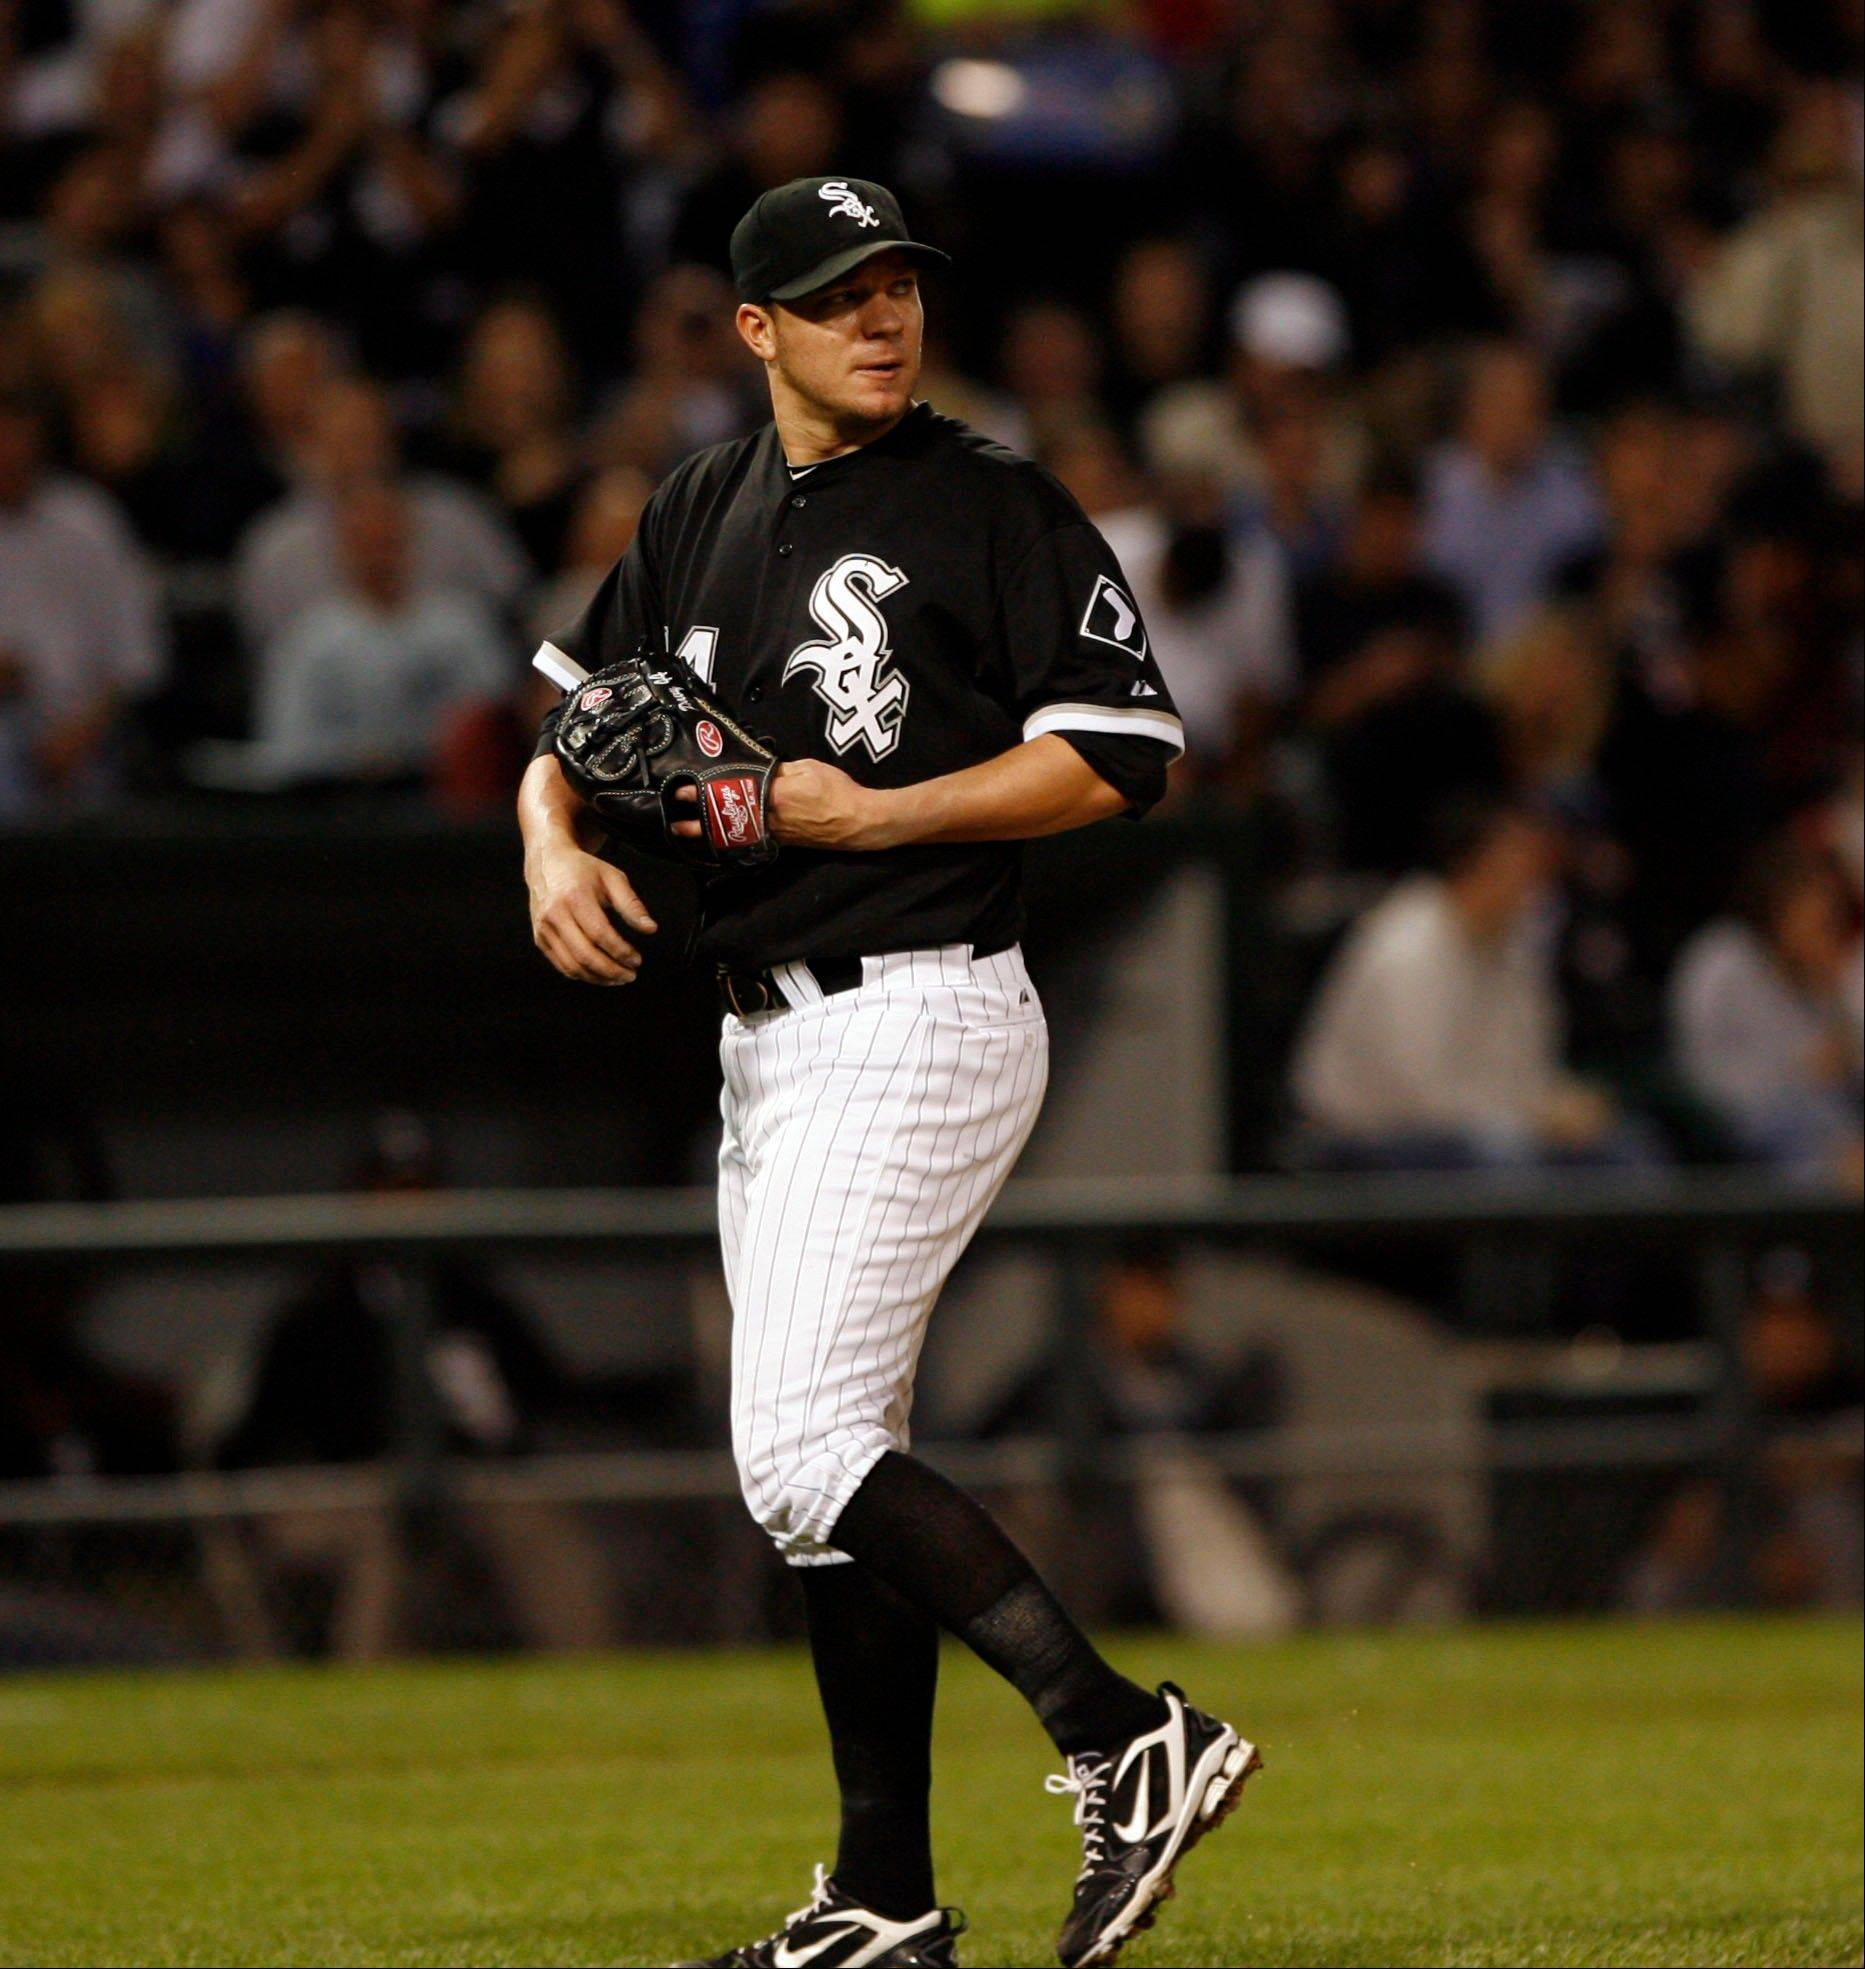 Jake Peavy turns toward the pitcher's mound after being pulled by manager Ozzie Guillen in the sixth inning Wednesday at U.S. Cellular Field.